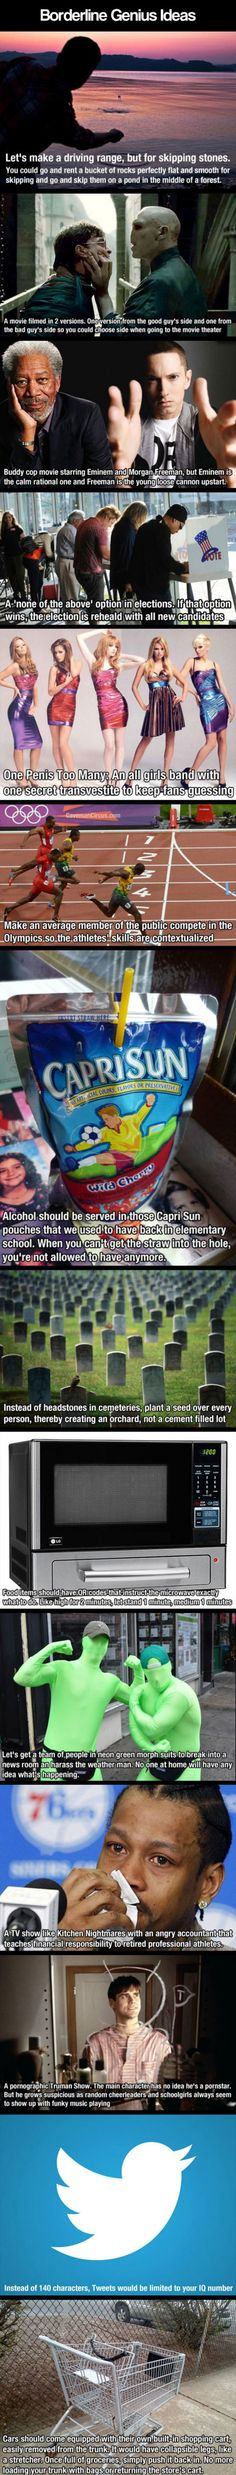 Some Good Ideas  // funny pictures - funny photos - funny images - funny pics - funny quotes - #lol #humor #funnypictures